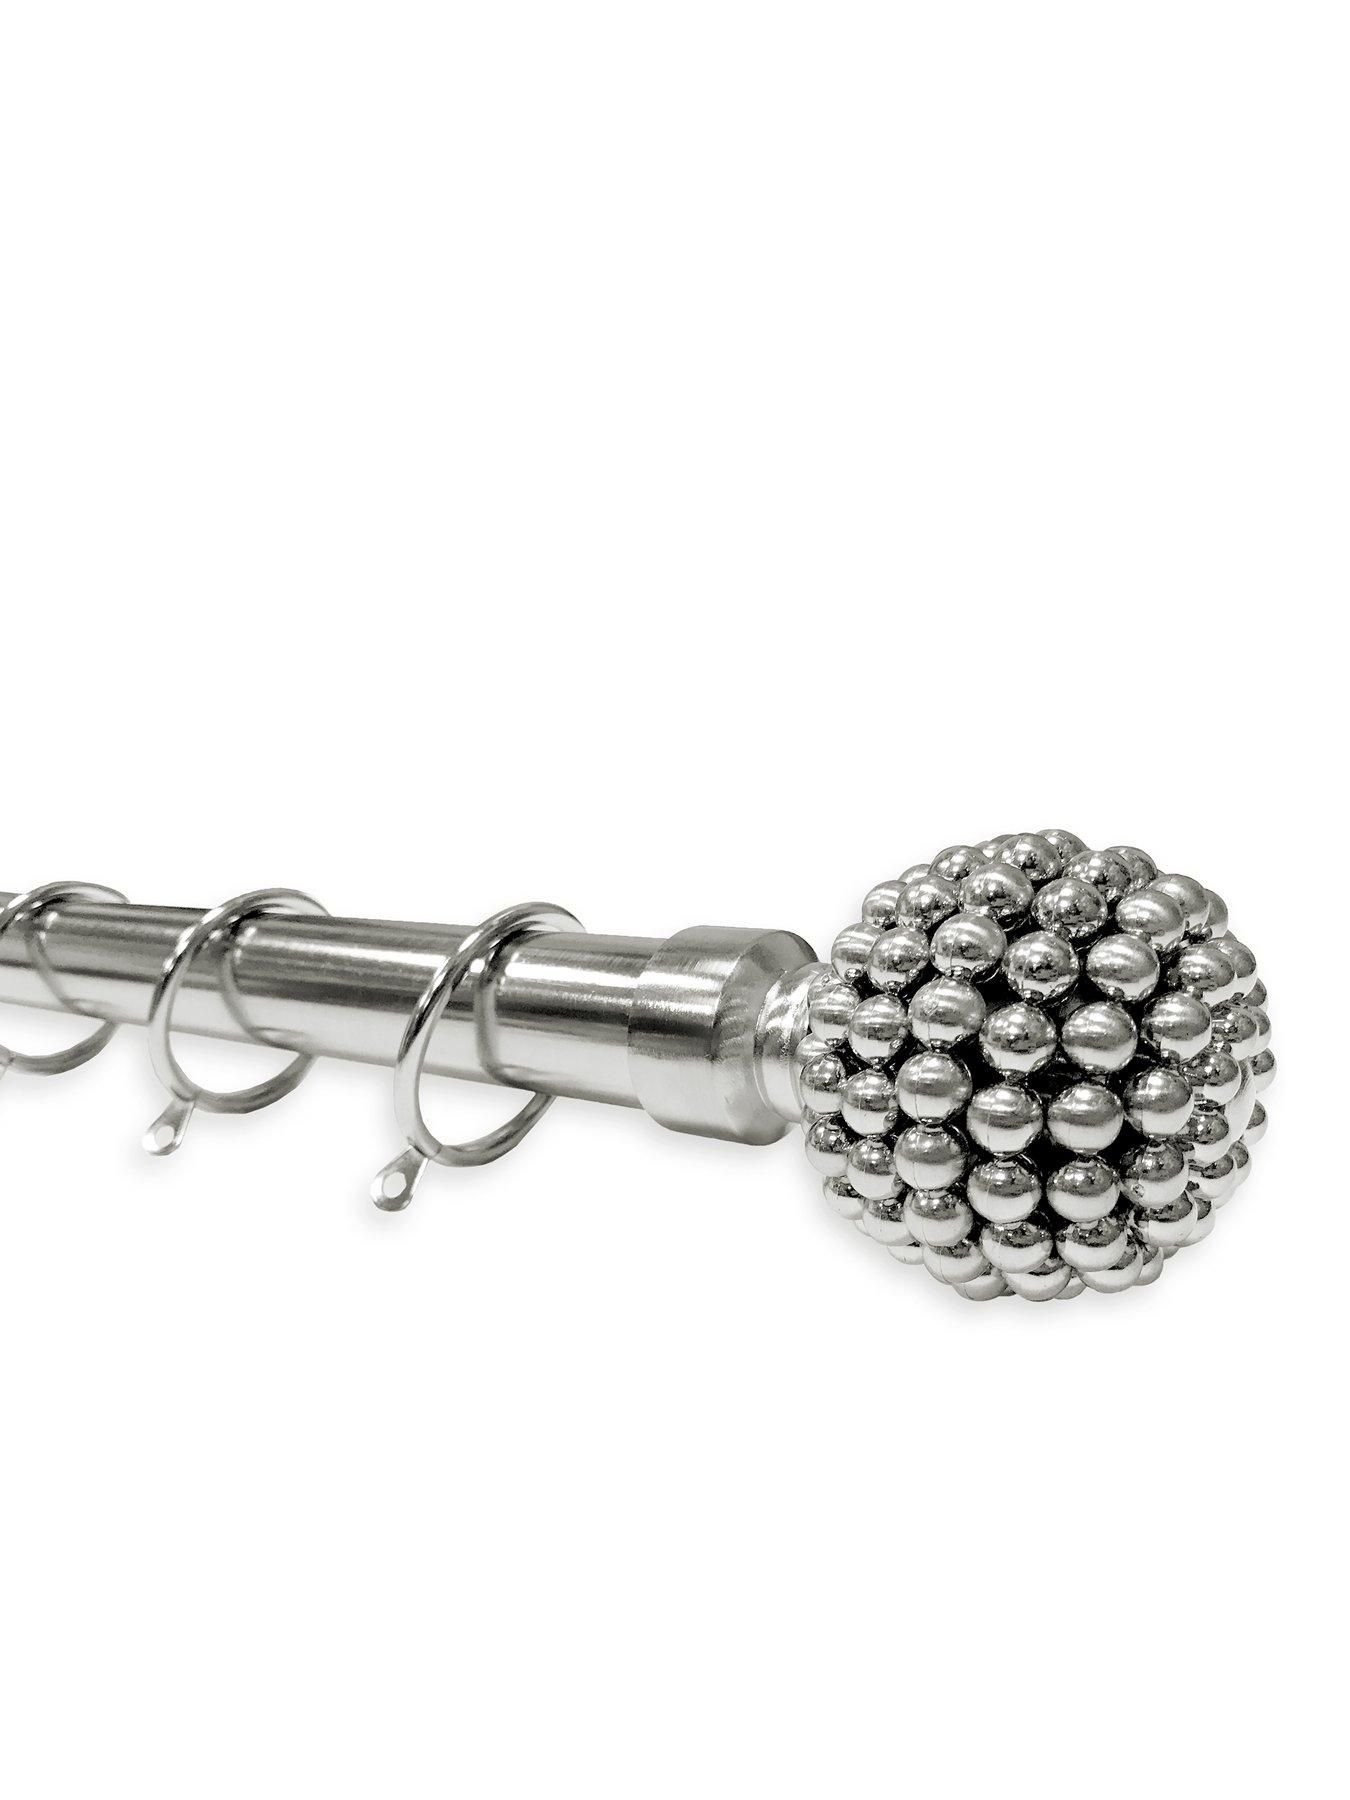 Large Studded Ball Finial Extendable Curtain Pole In 2020 Extendable Curtain Pole Curtain Poles Wow Products